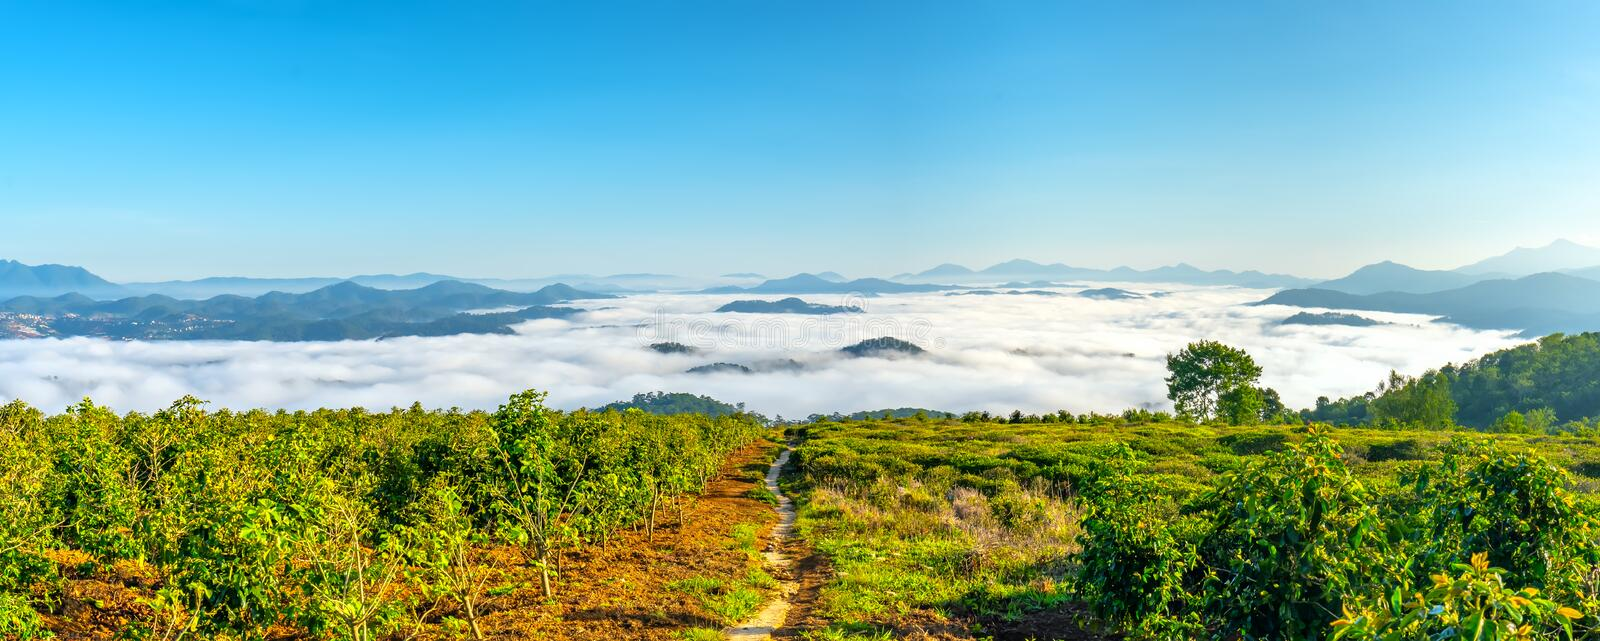 Morning in small town on the plateau fog covered houses royalty free stock images